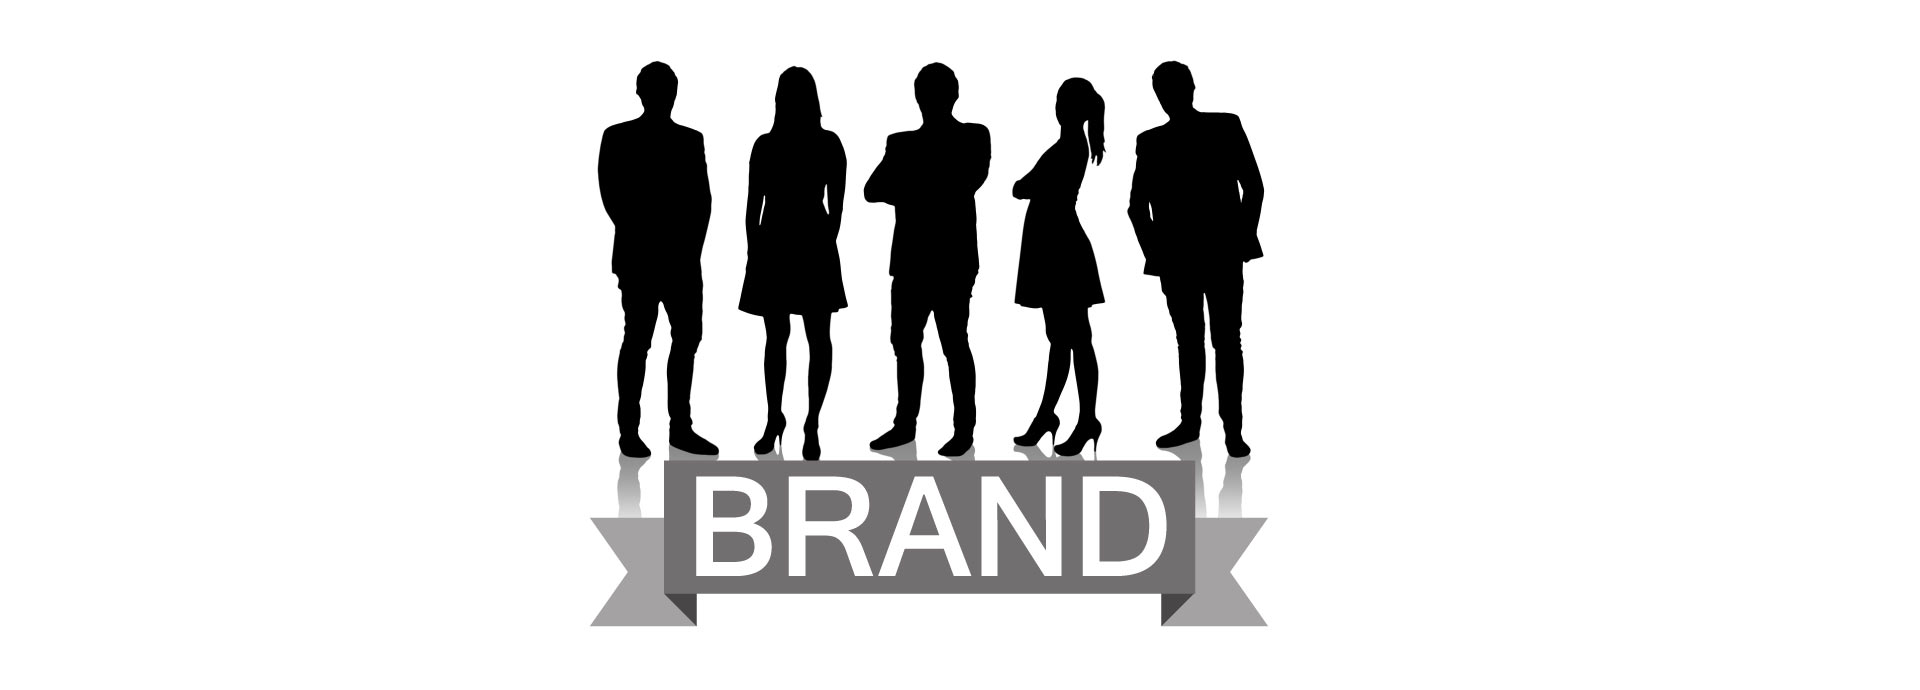 branded organizational culture